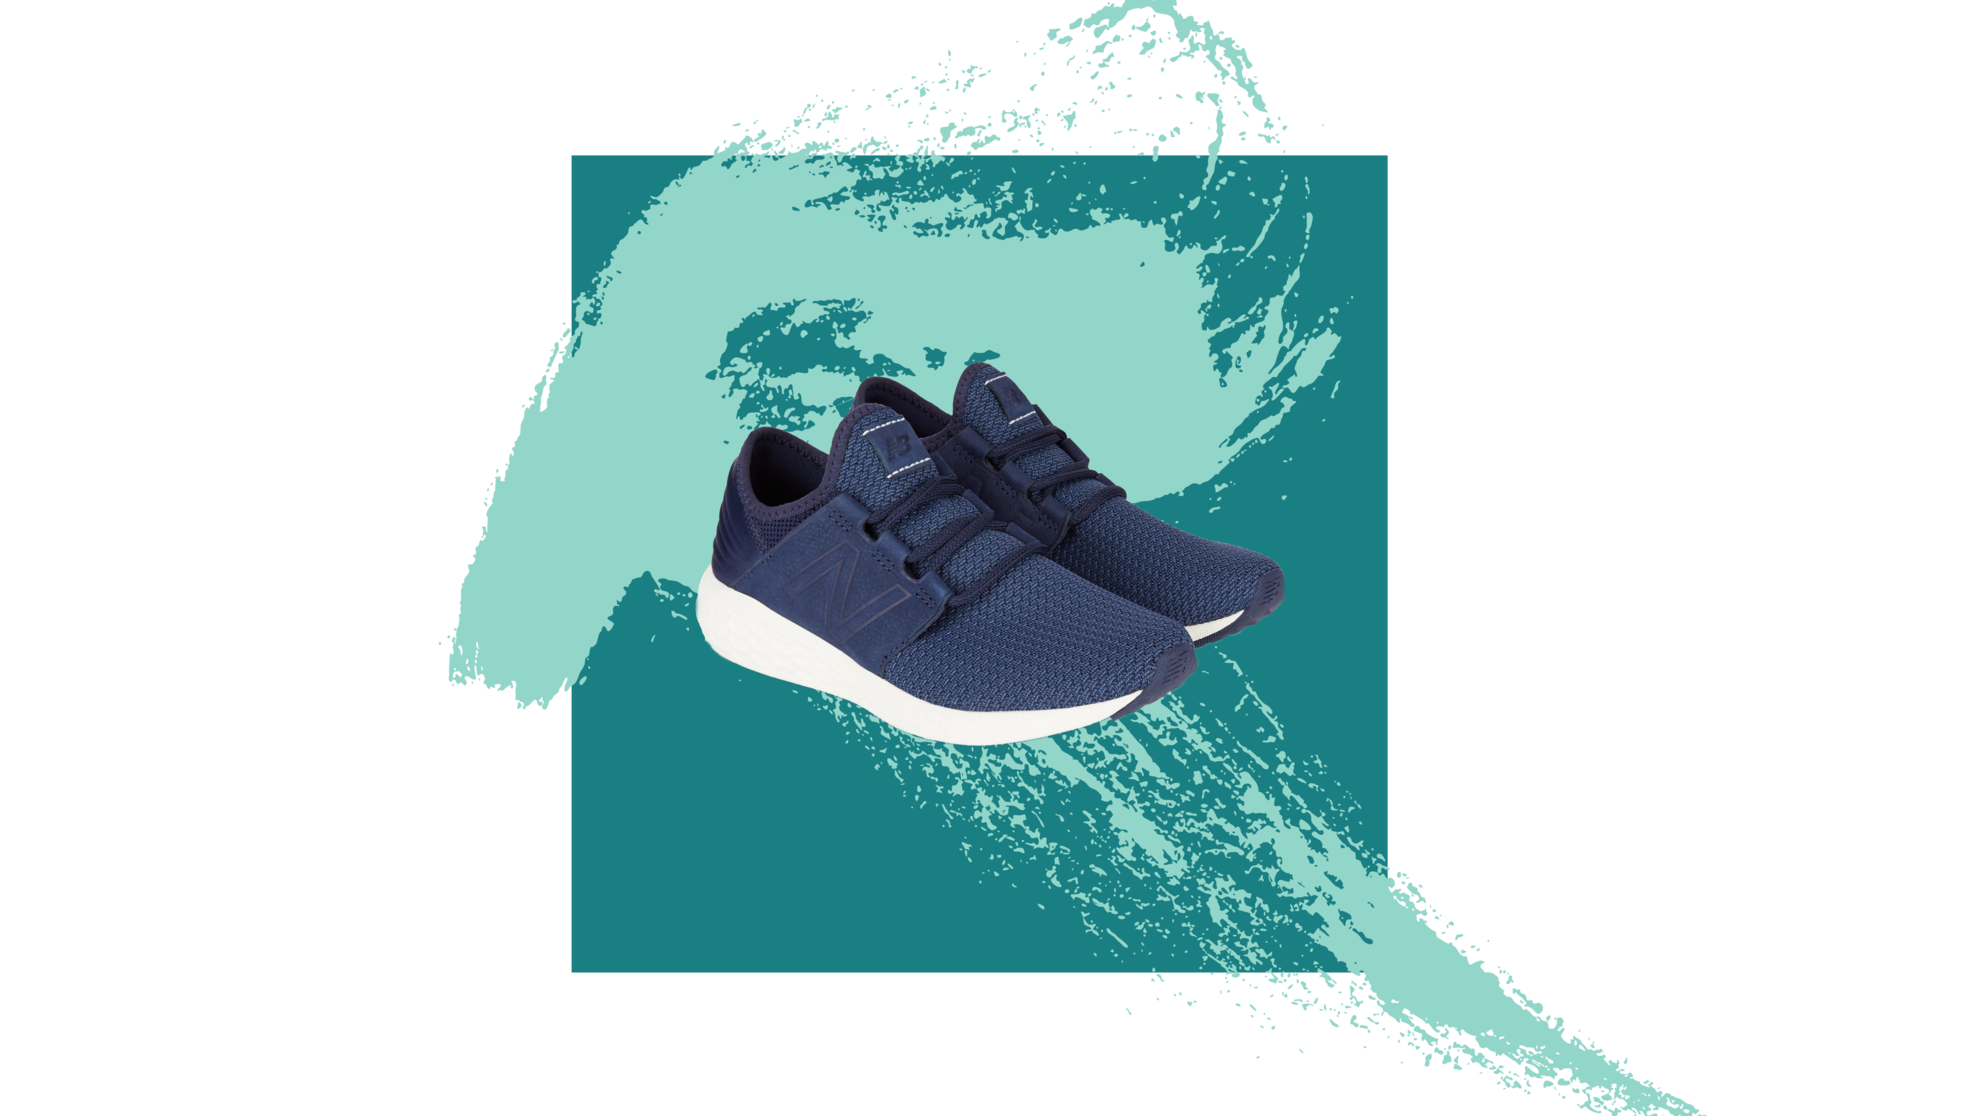 New-Balance sneakers woman health exercise